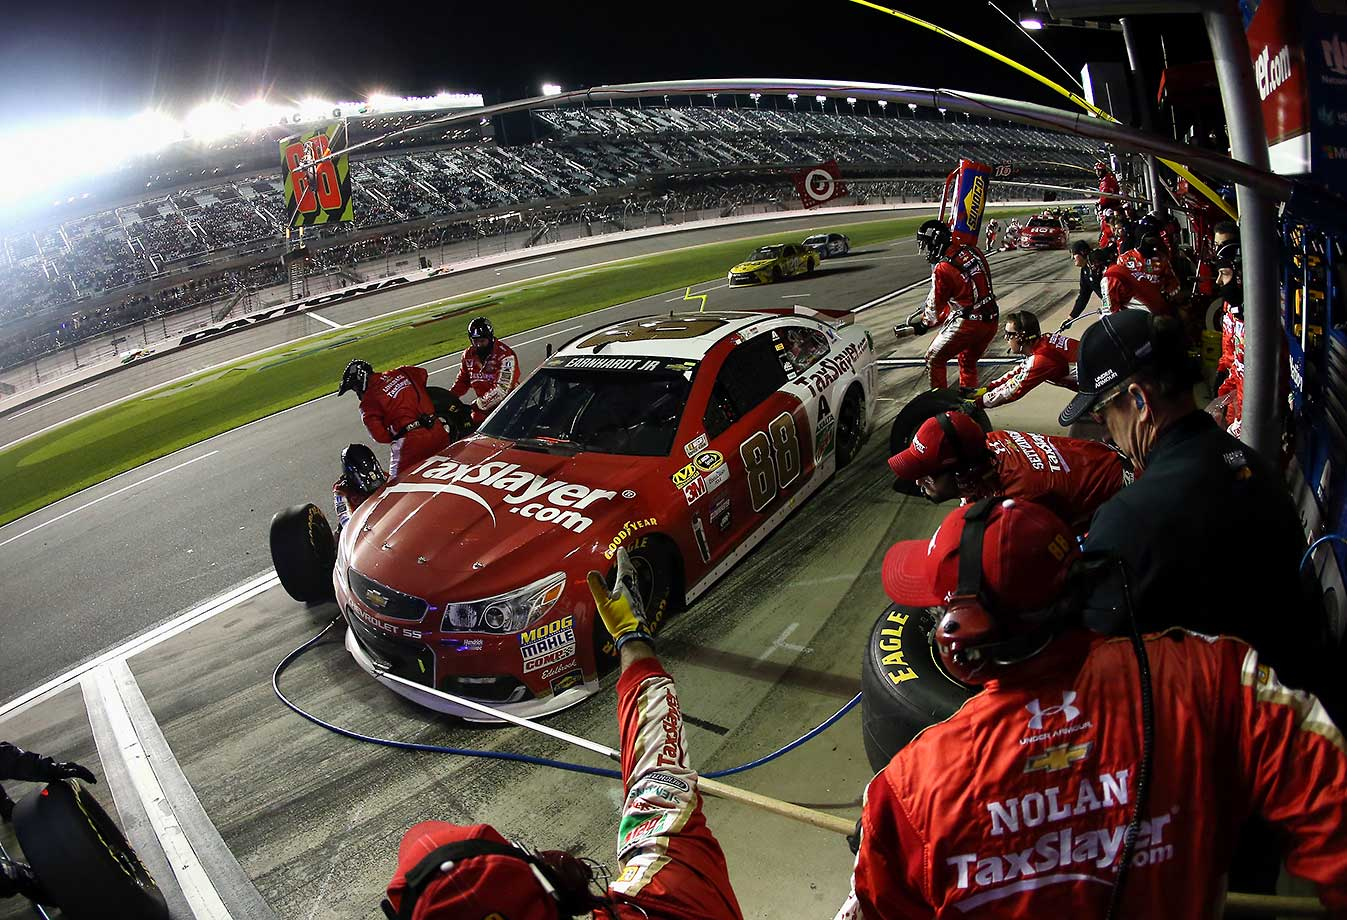 Dale Earnhardt Jr. pits during the NASCAR Sprint Cup Series Sprint Unlimited at Daytona International Speedway.